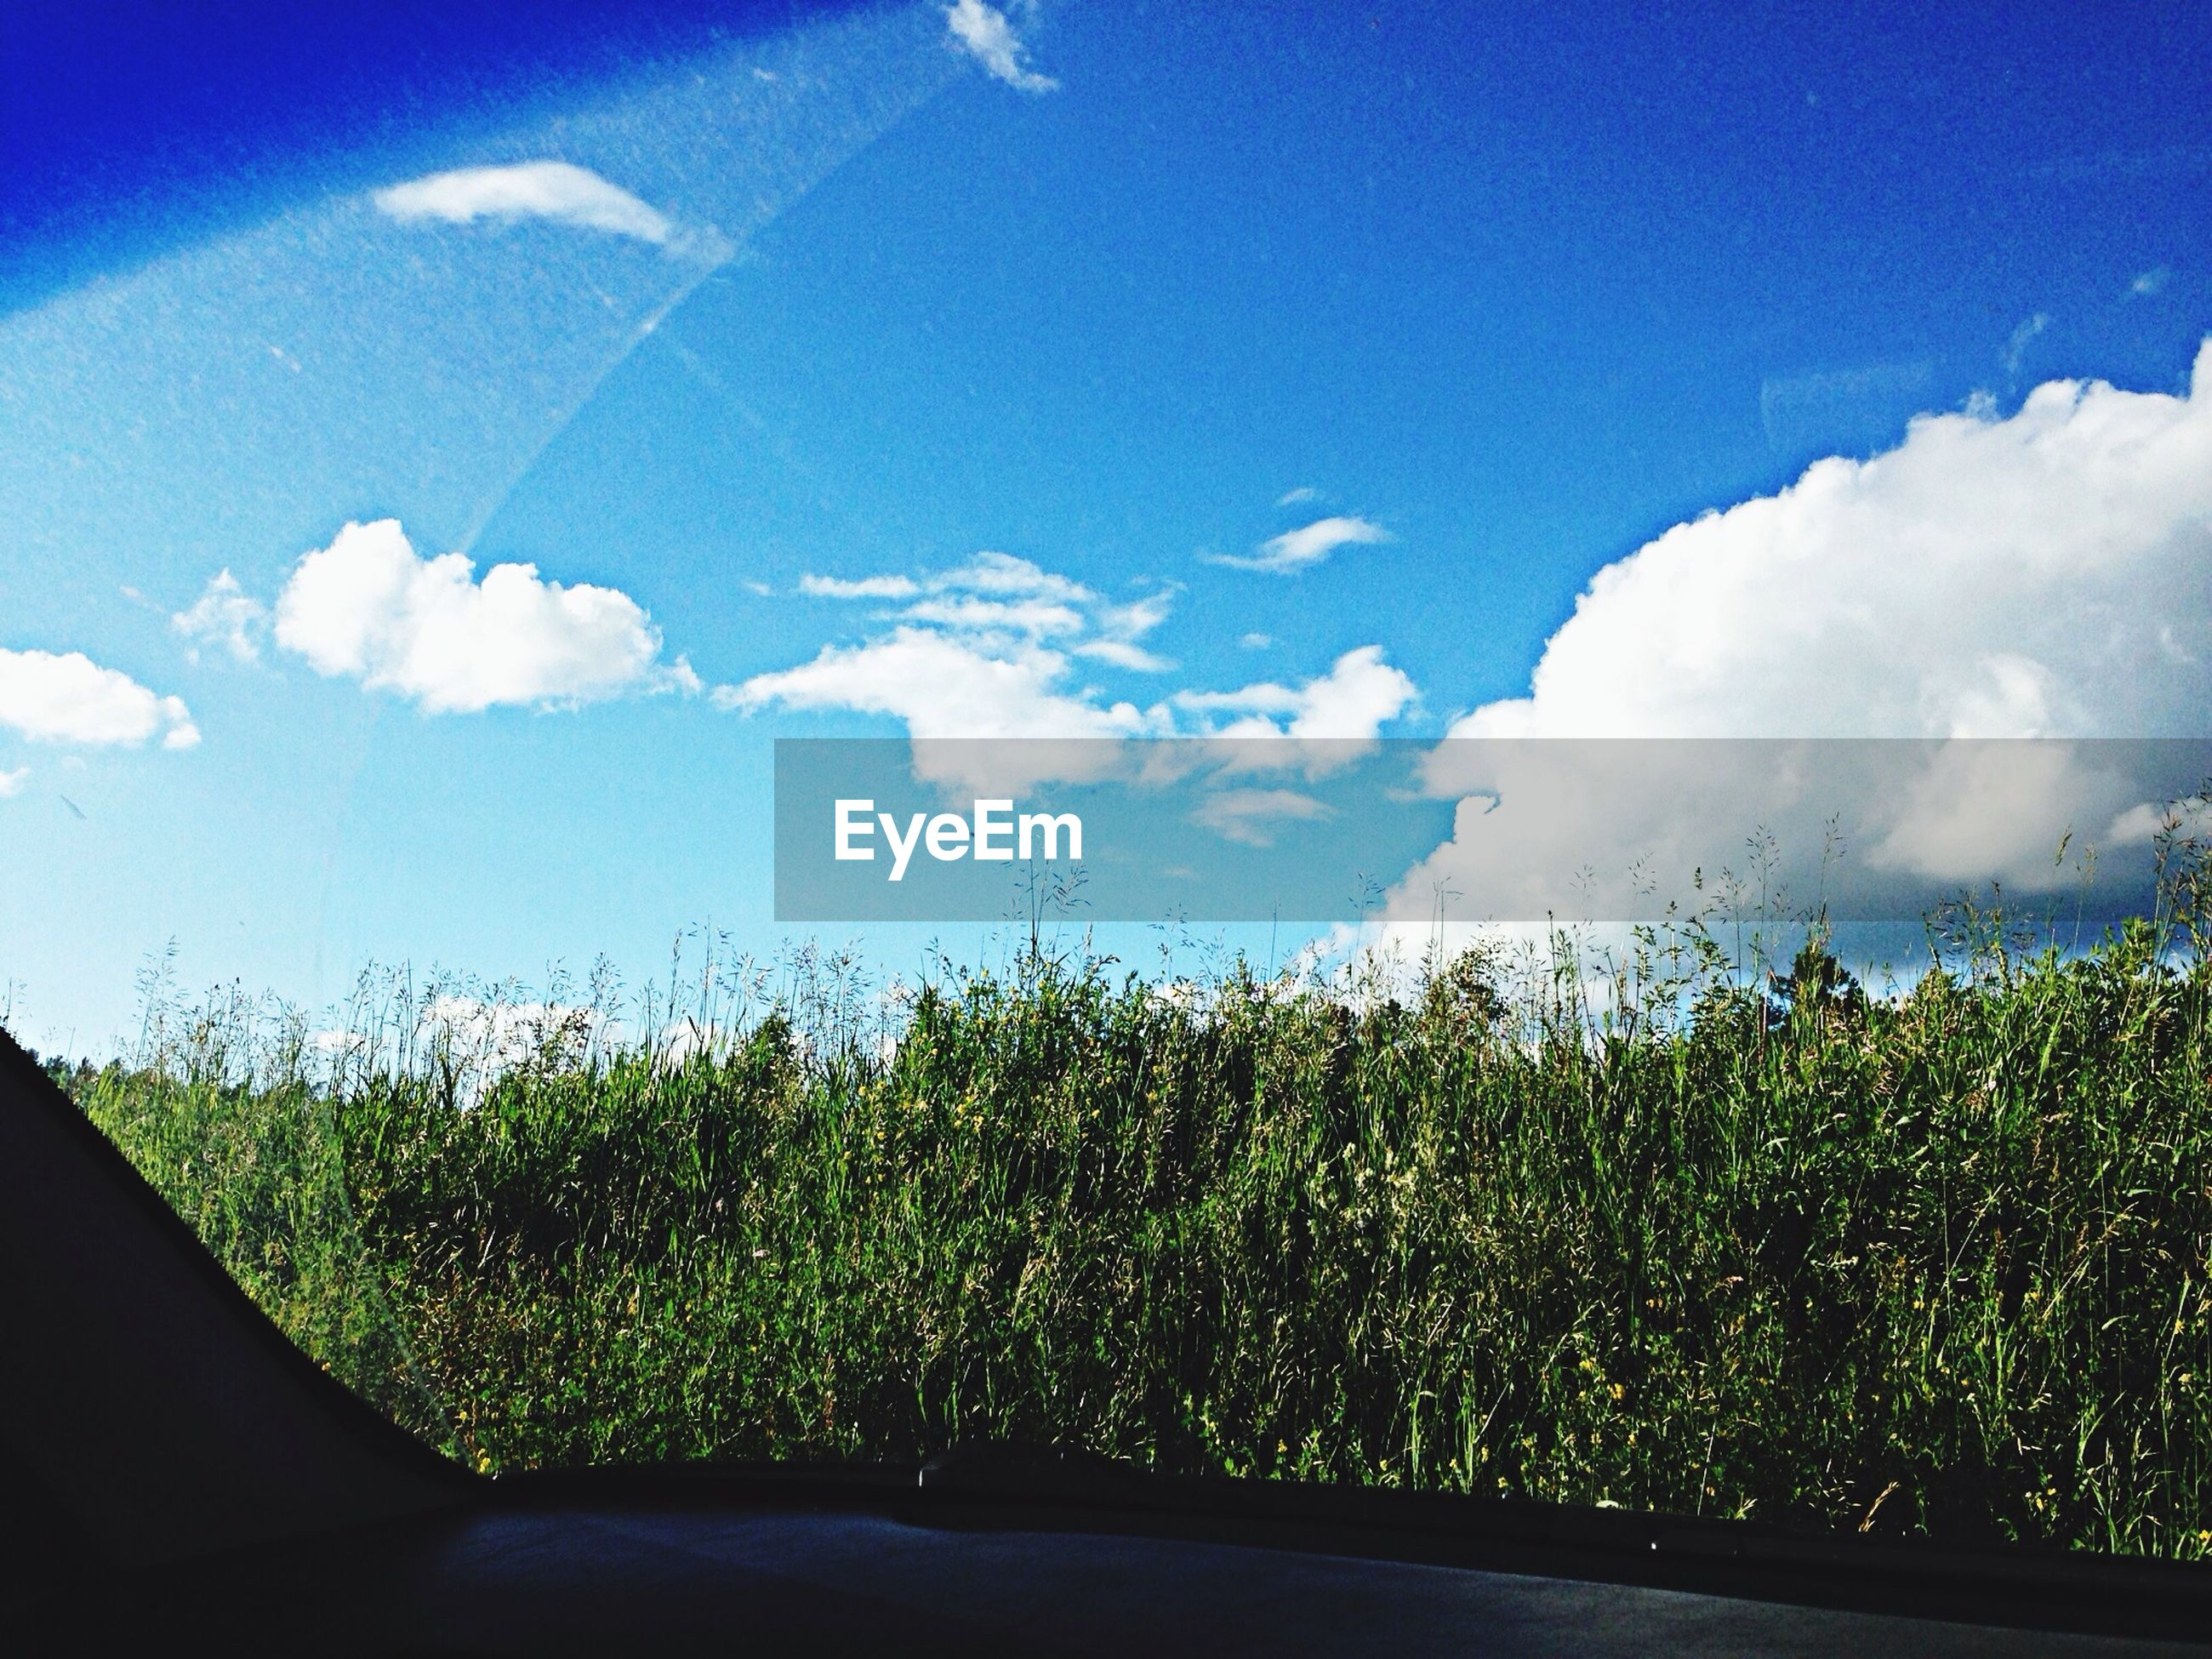 sky, blue, tree, transportation, road, nature, growth, cloud - sky, beauty in nature, transparent, cloud, glass - material, green color, sunlight, tranquility, day, scenics, window, tranquil scene, car